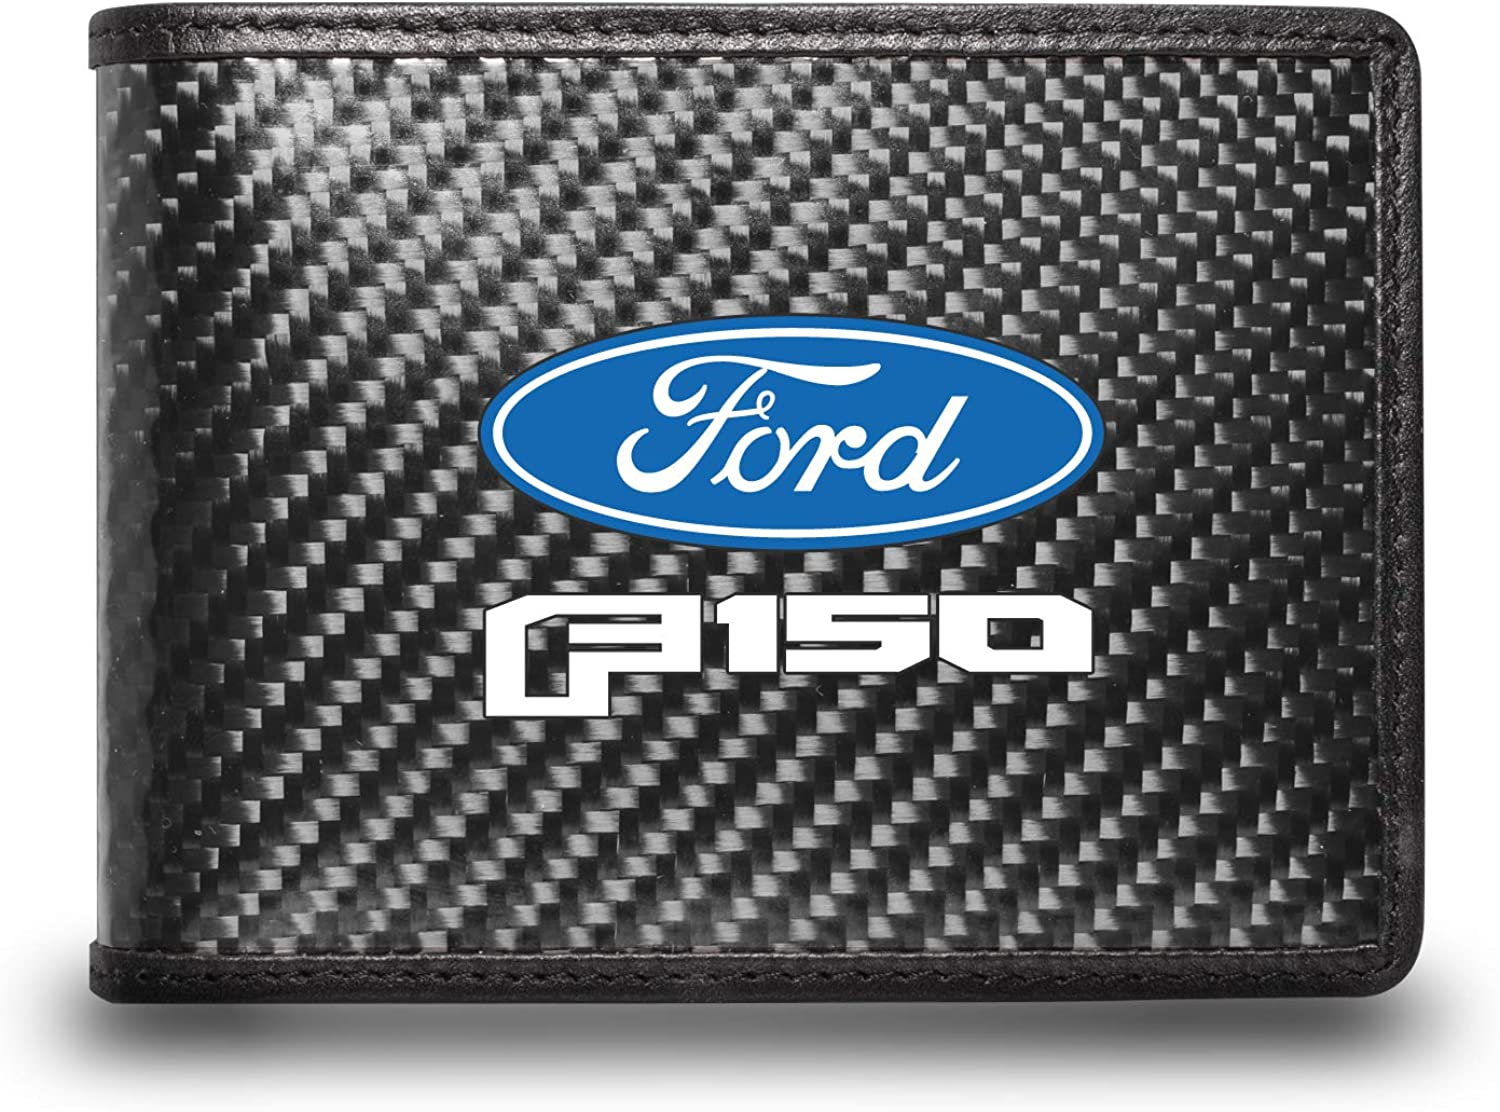 iPick Image for - Ford F-150 人気ブレゼント! 2015 Real Black 贈物 2020 Carbon to Fibe